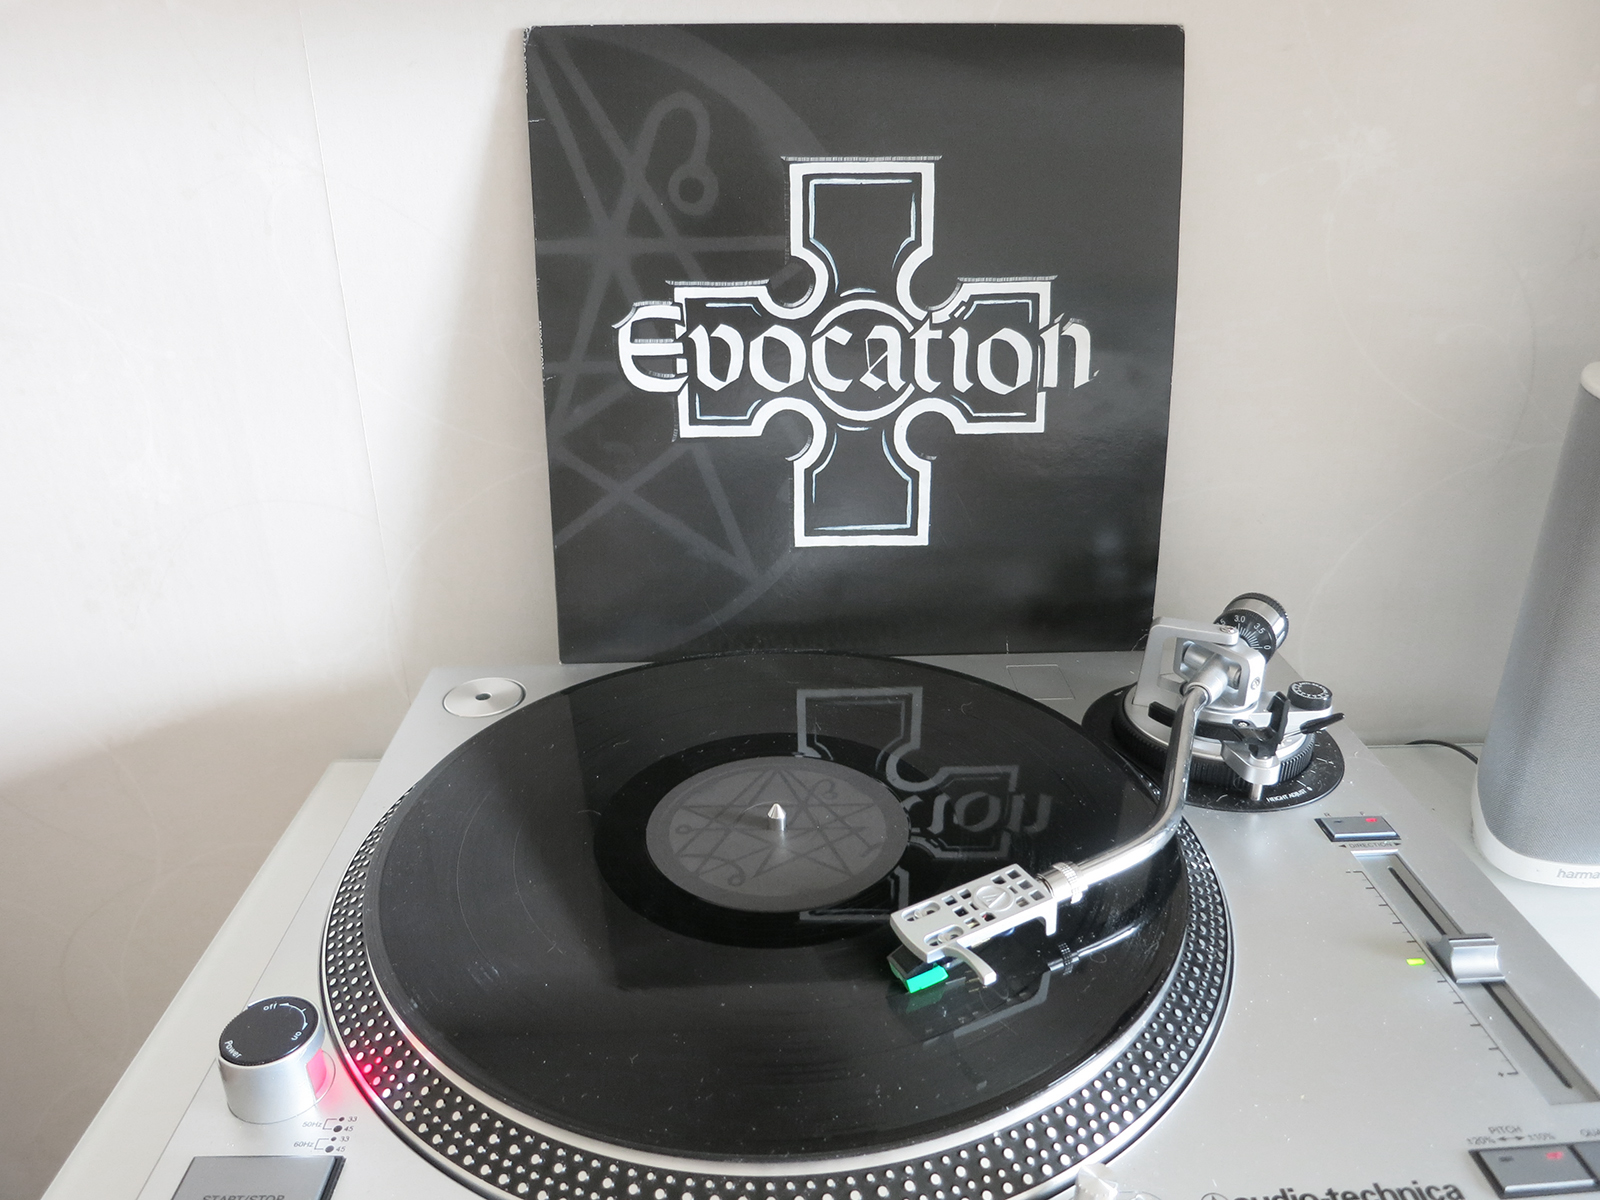 Evocation - Evocation